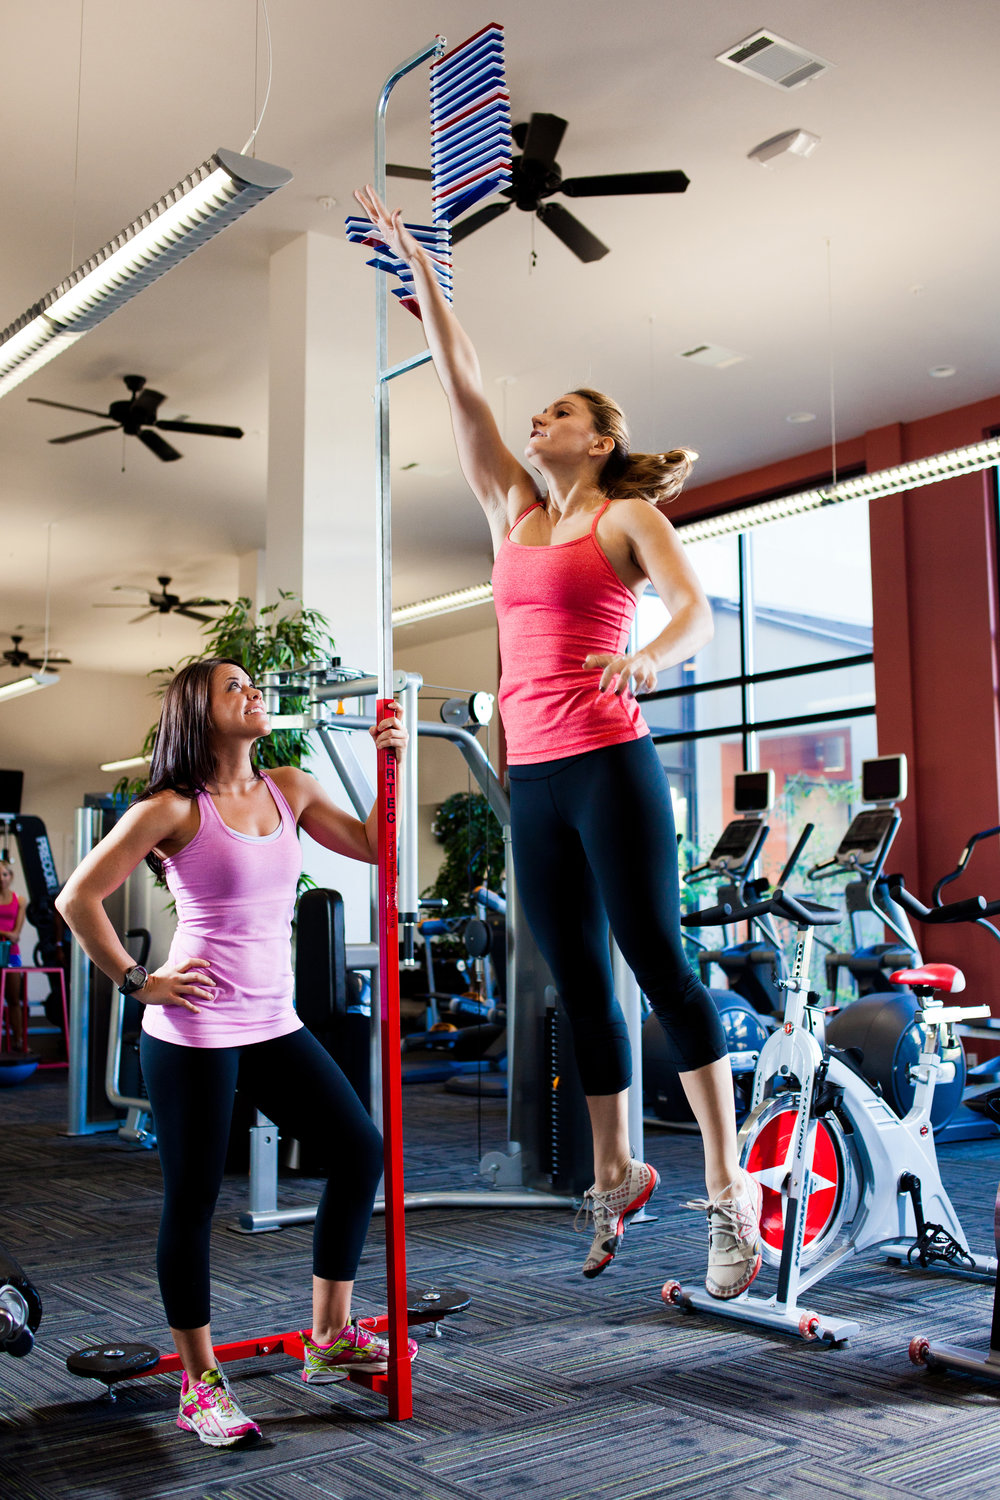 5-steps-to-becoming-personal-trainer-part-1.jpg